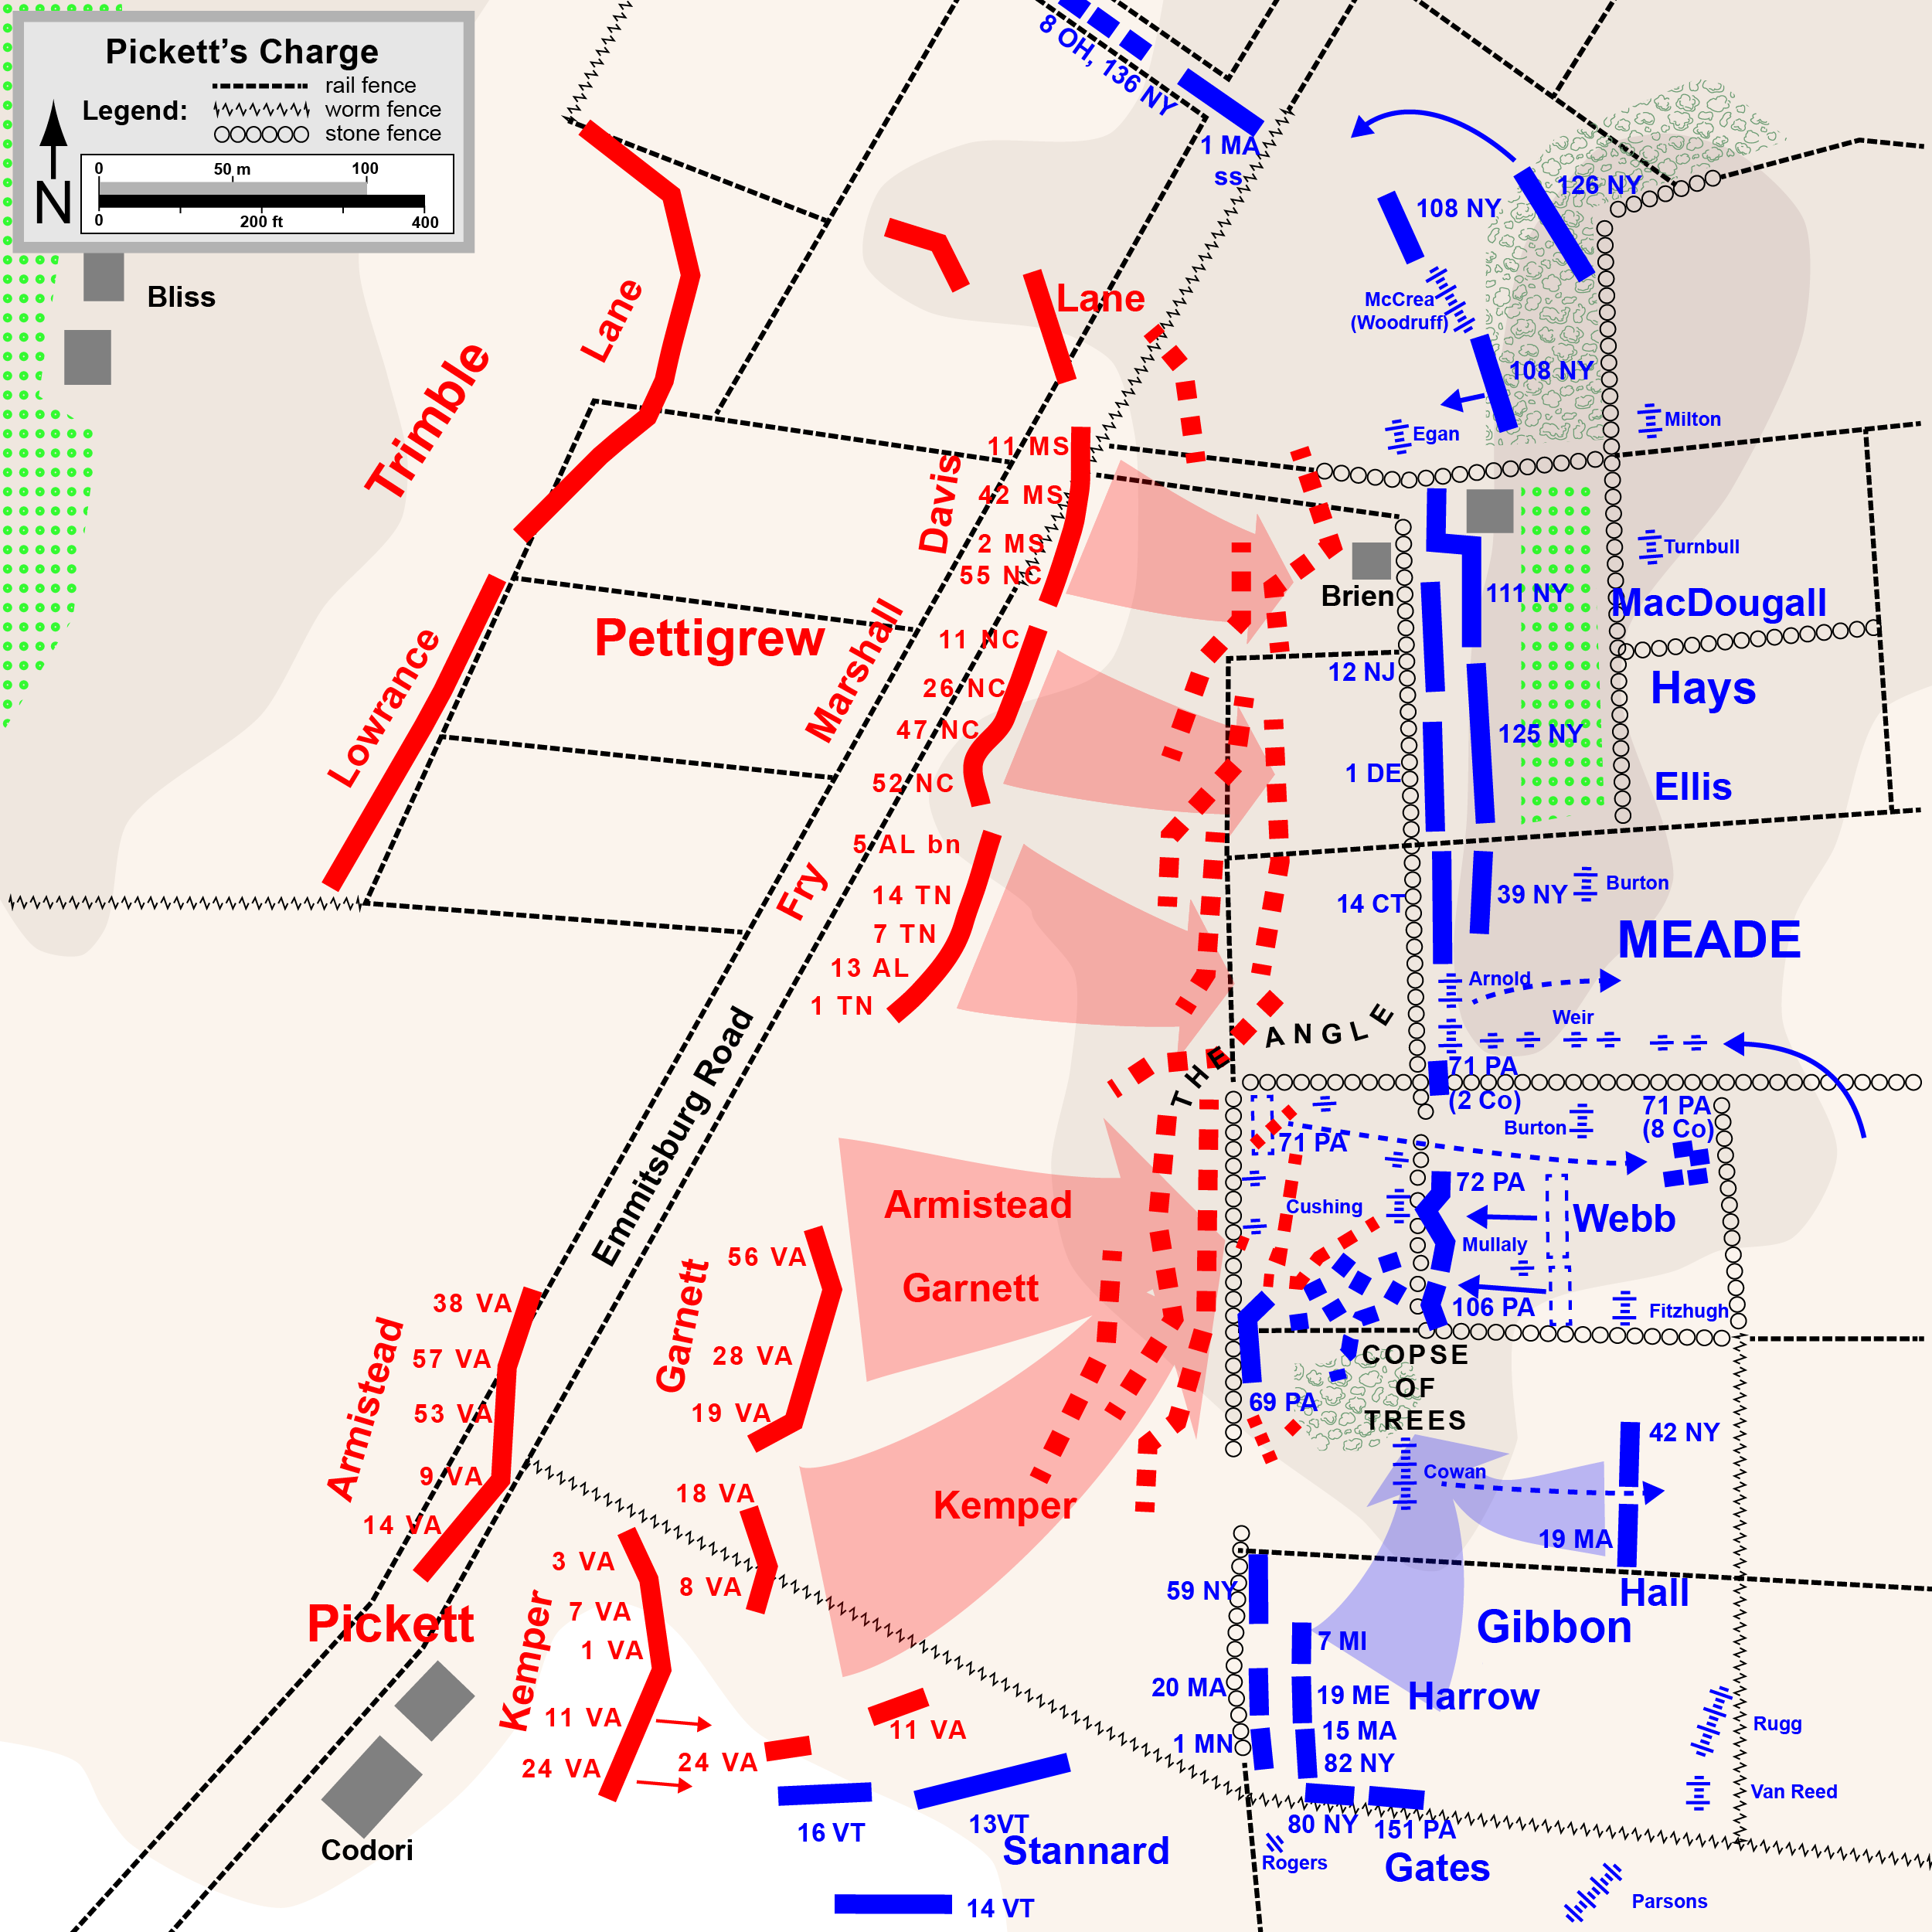 Pickett%27s-Charge-detail.png